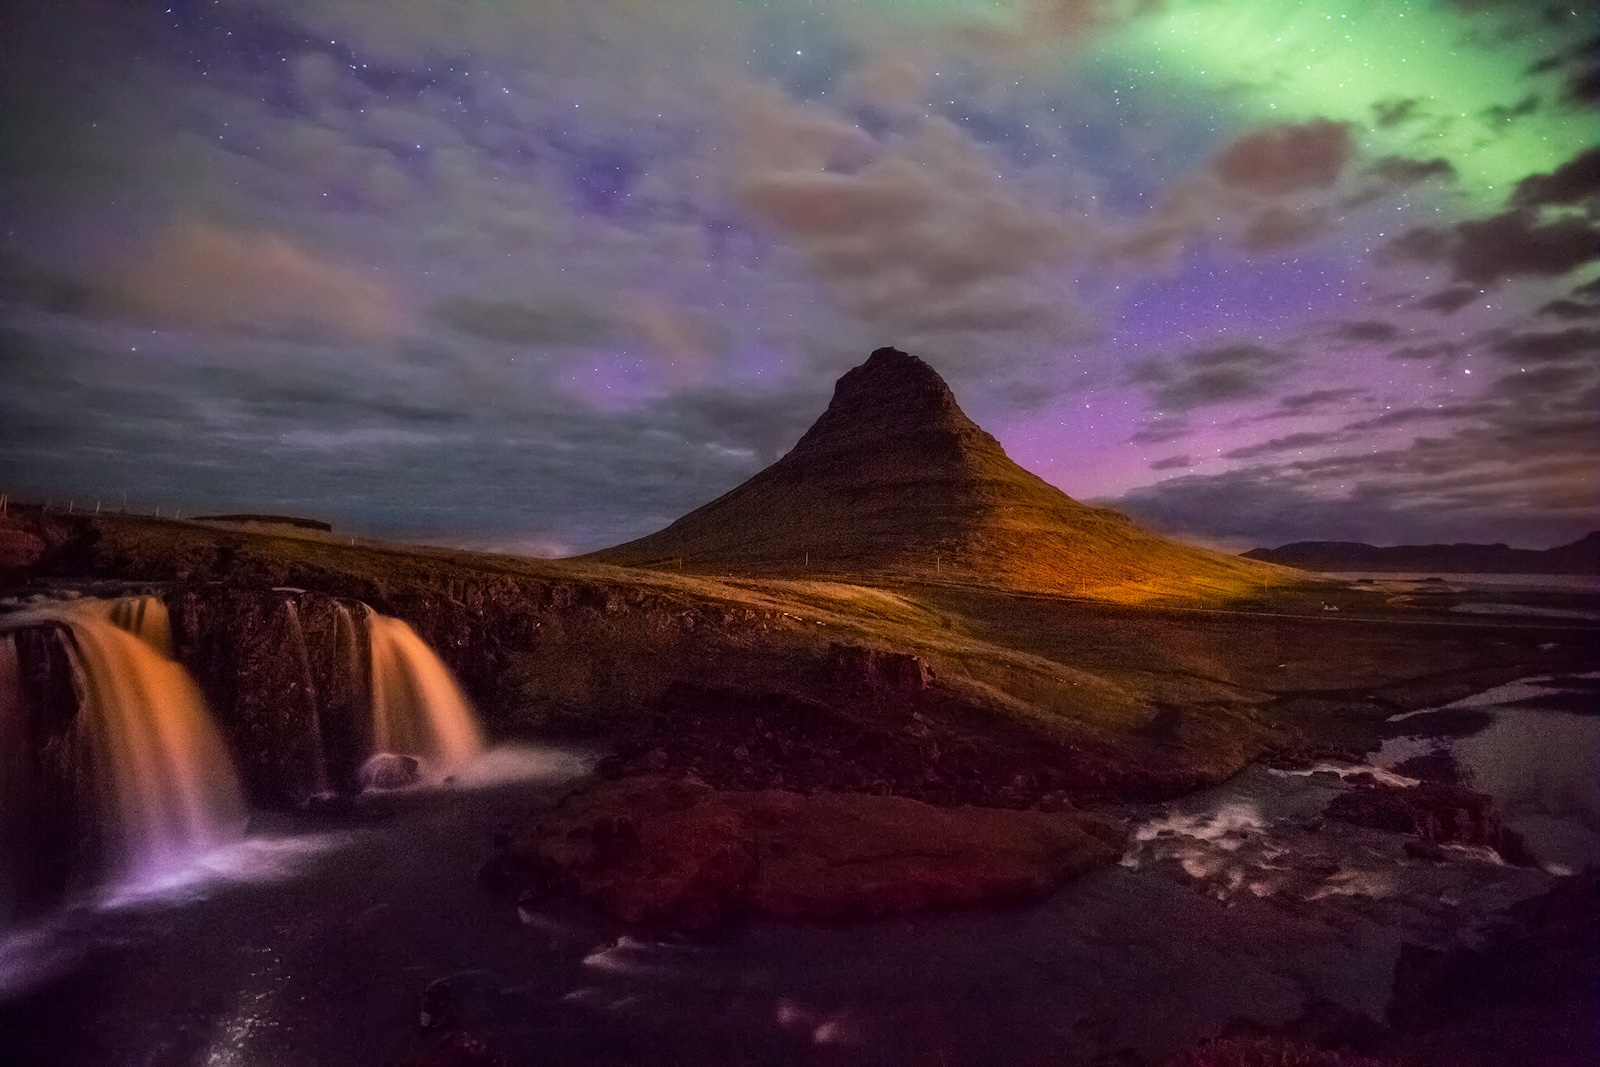 europe,iceland,kirkjufell,mountain,night,northern lights,peak,snæfellsnes,stream,water body,waterfall,western,snæfellsnes, photo